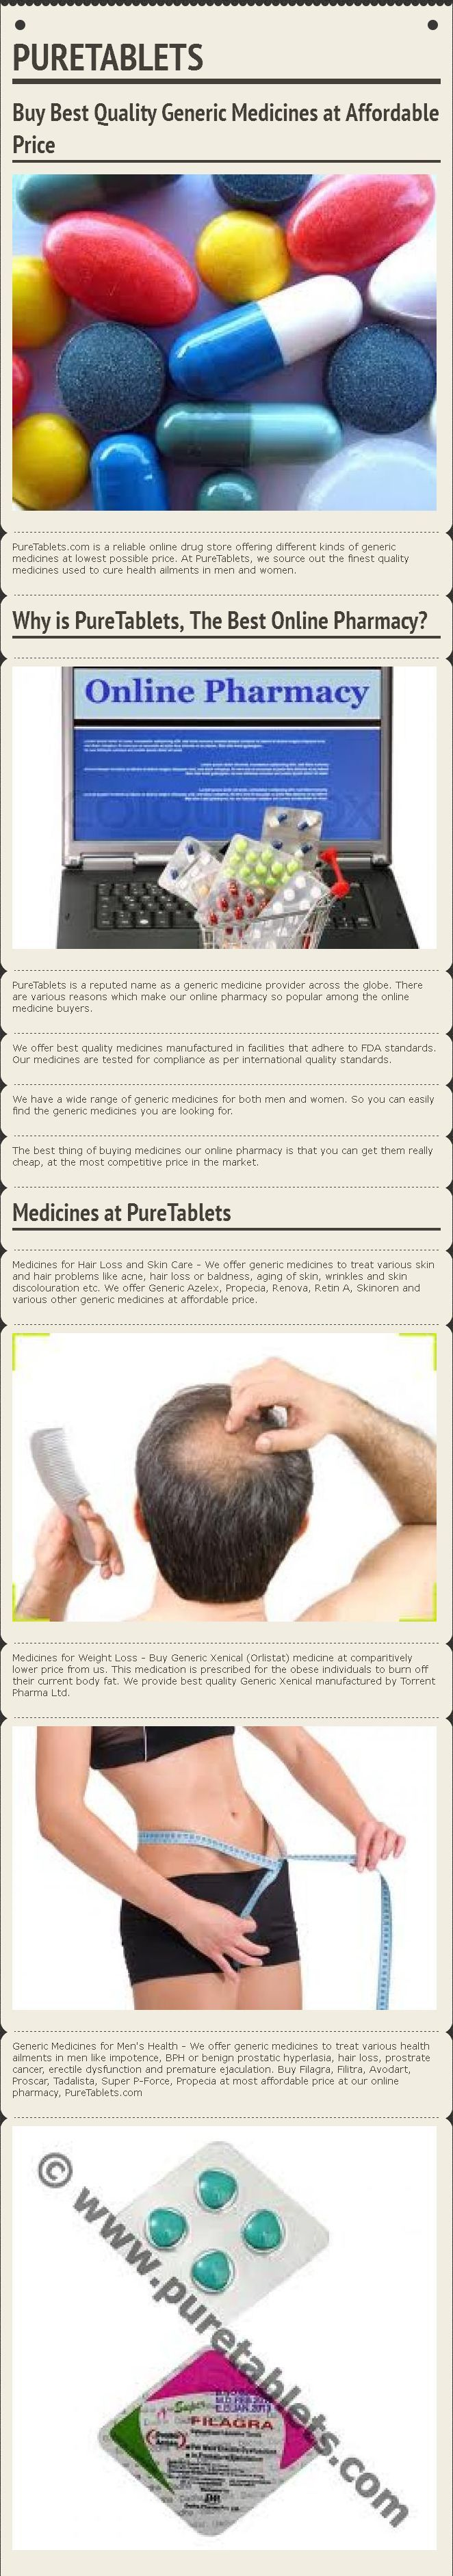 images about our infographics drug store puretablets is a reliable online pharmacy for those looking to buy generic medicines at cheaper price